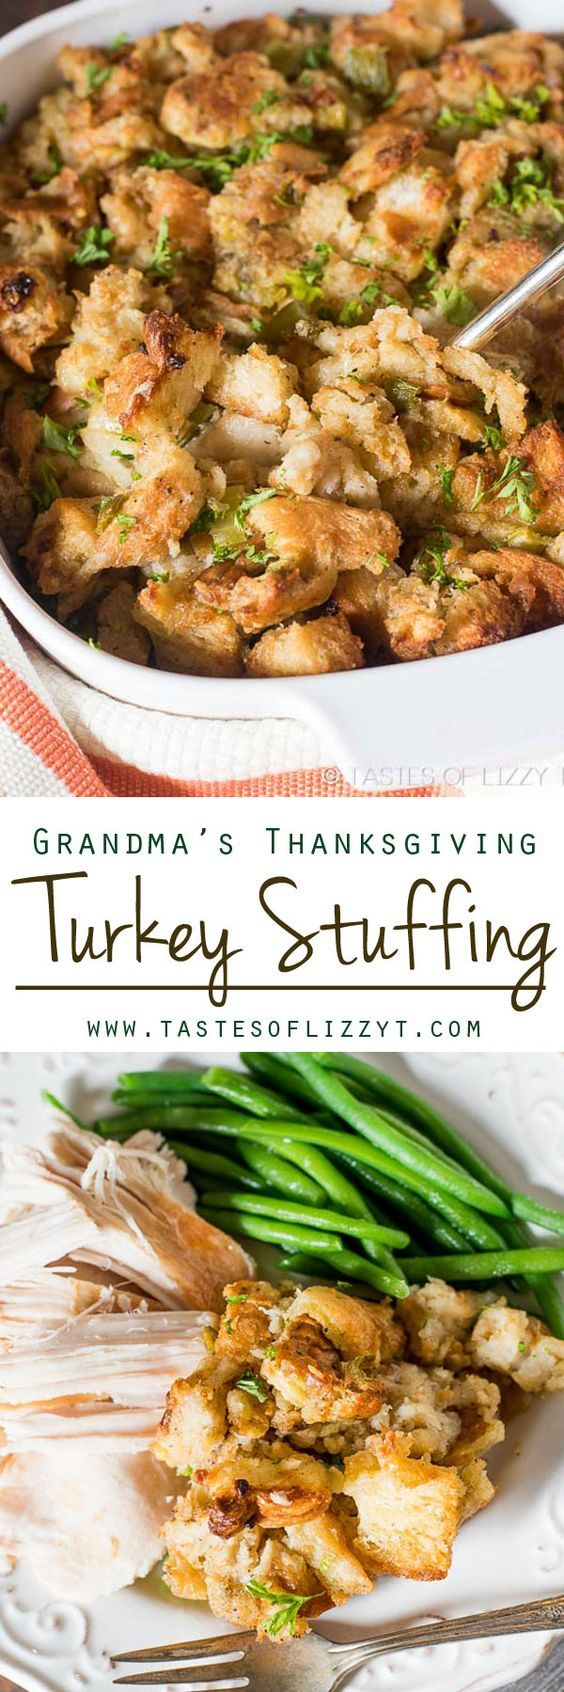 She says this buttery, savory, melt-in-your-mouth stuffing is the best stuffing recipe around! Grandma's Thanksgiving Turkey Stuffing Recipe | Tastes of Lizzy T